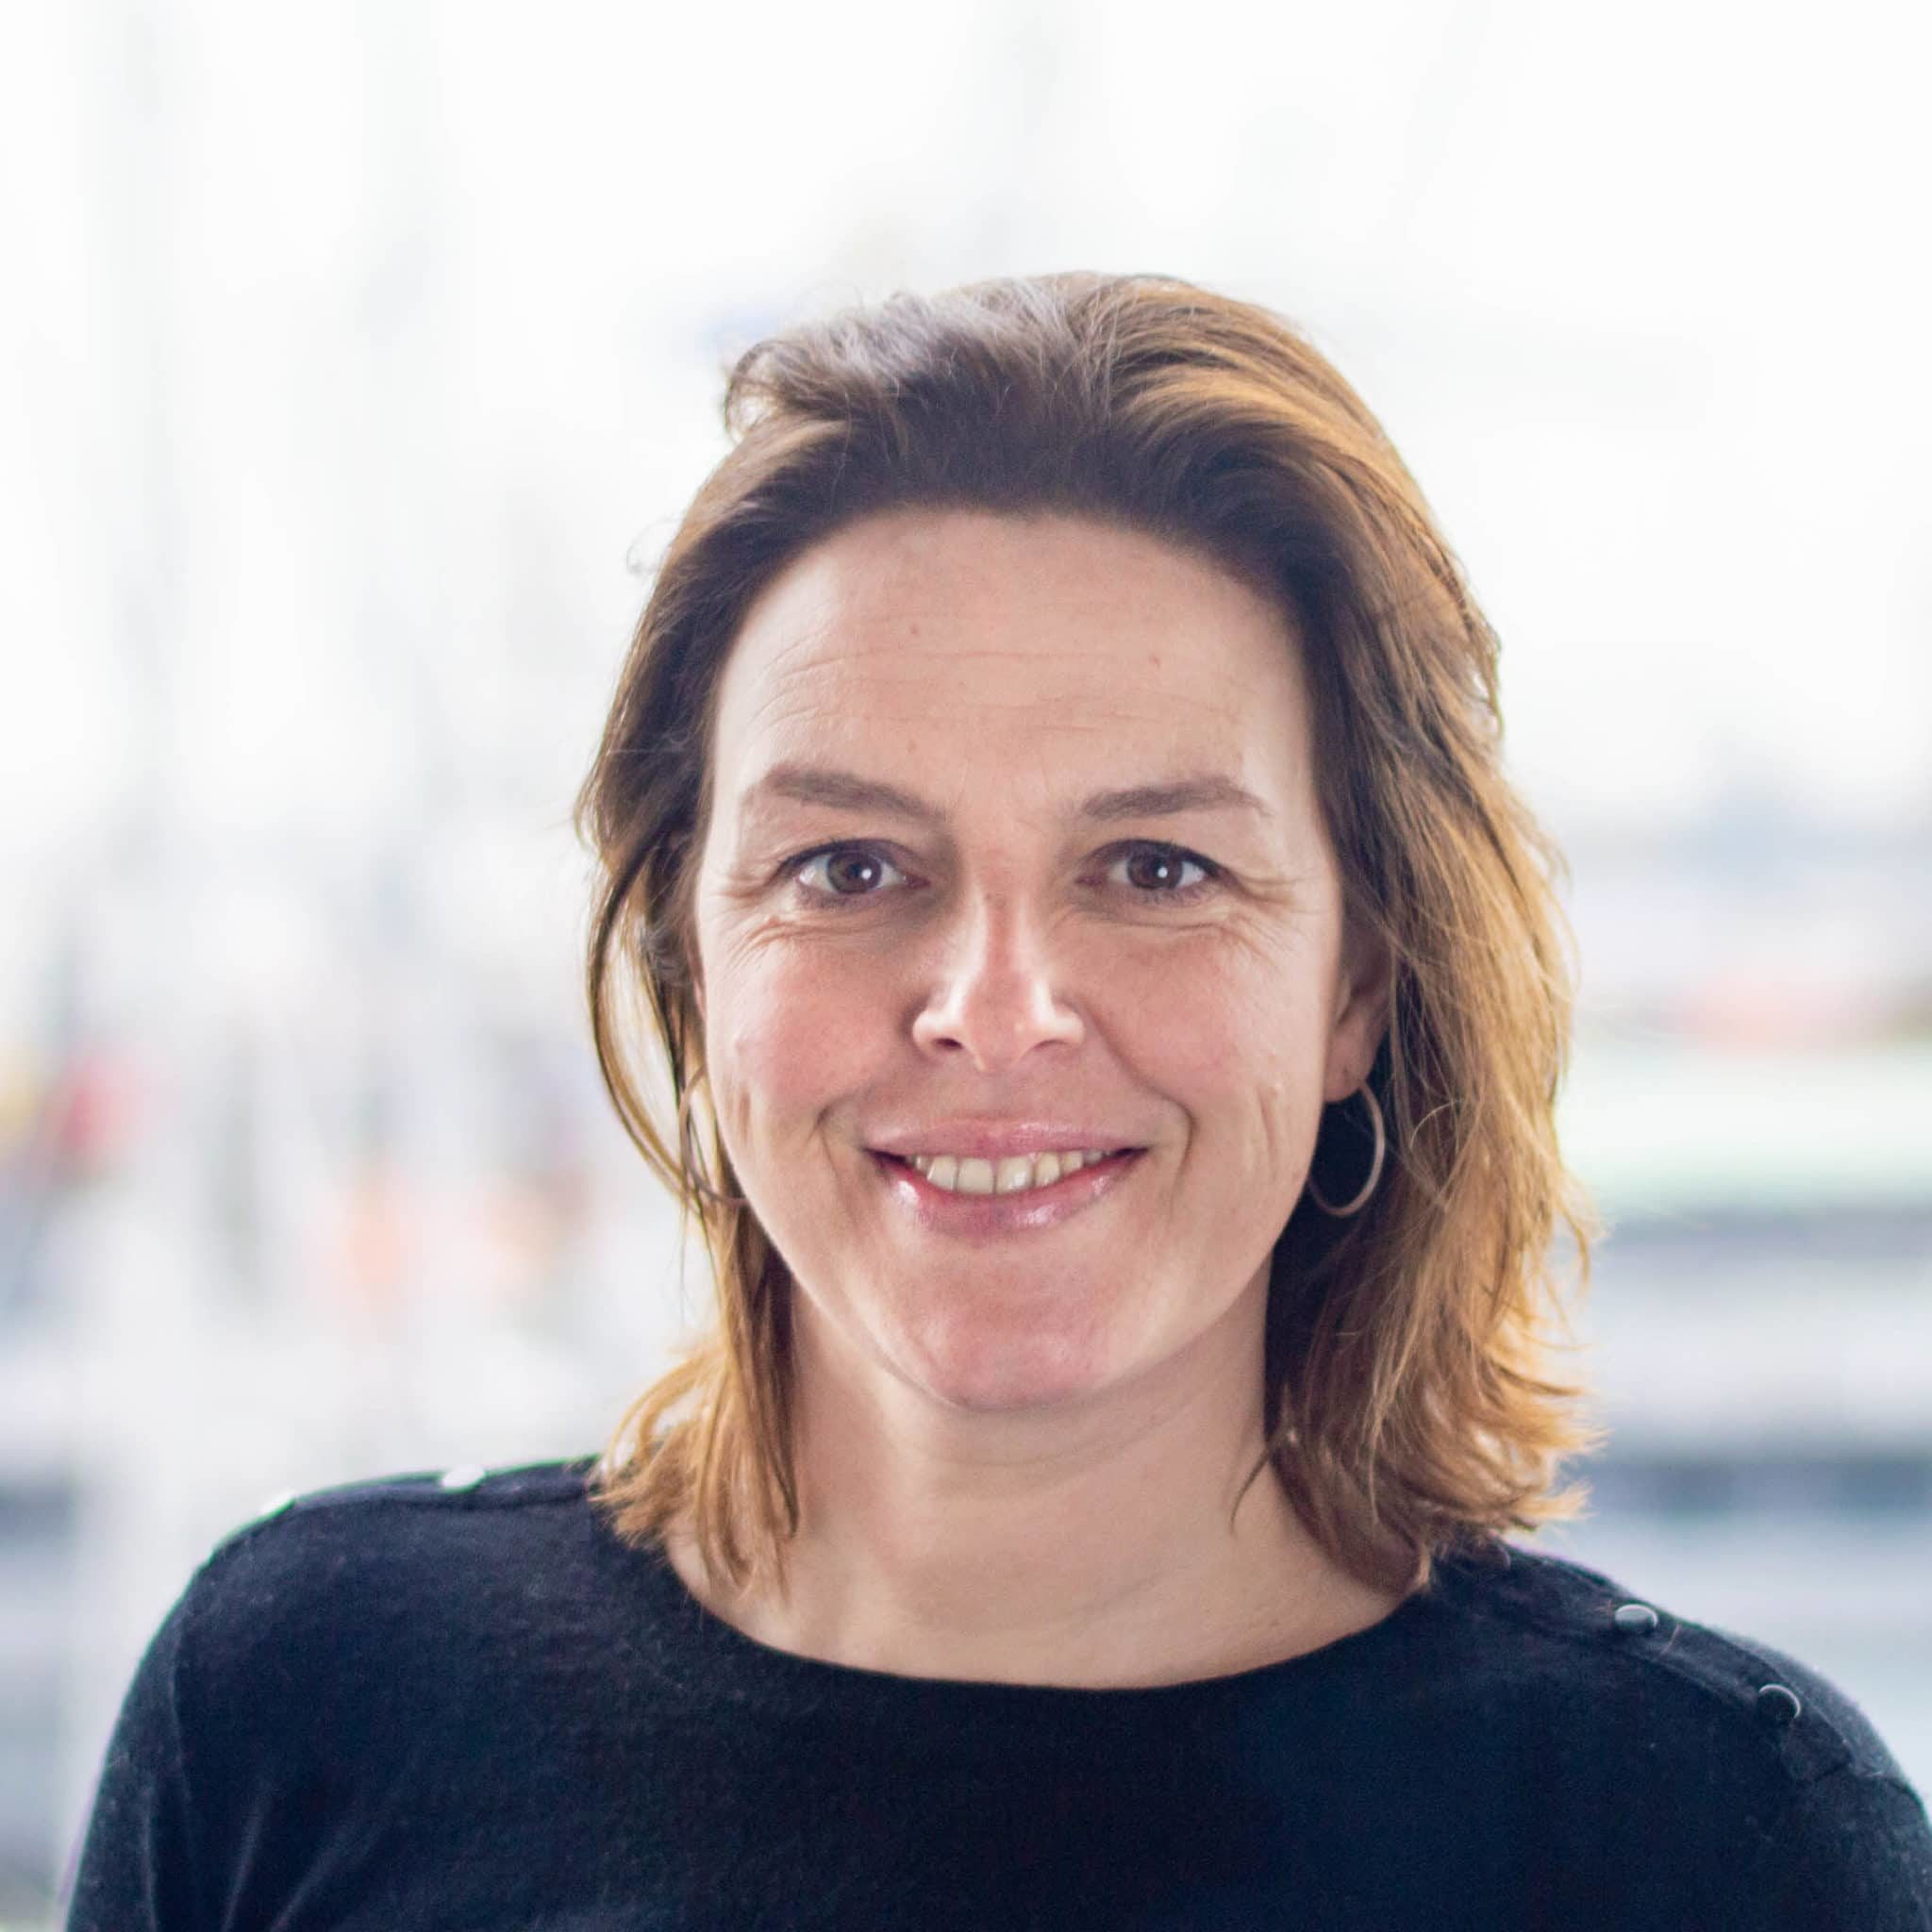 Anneleid managing agent program enbiun about us studio succesvolle